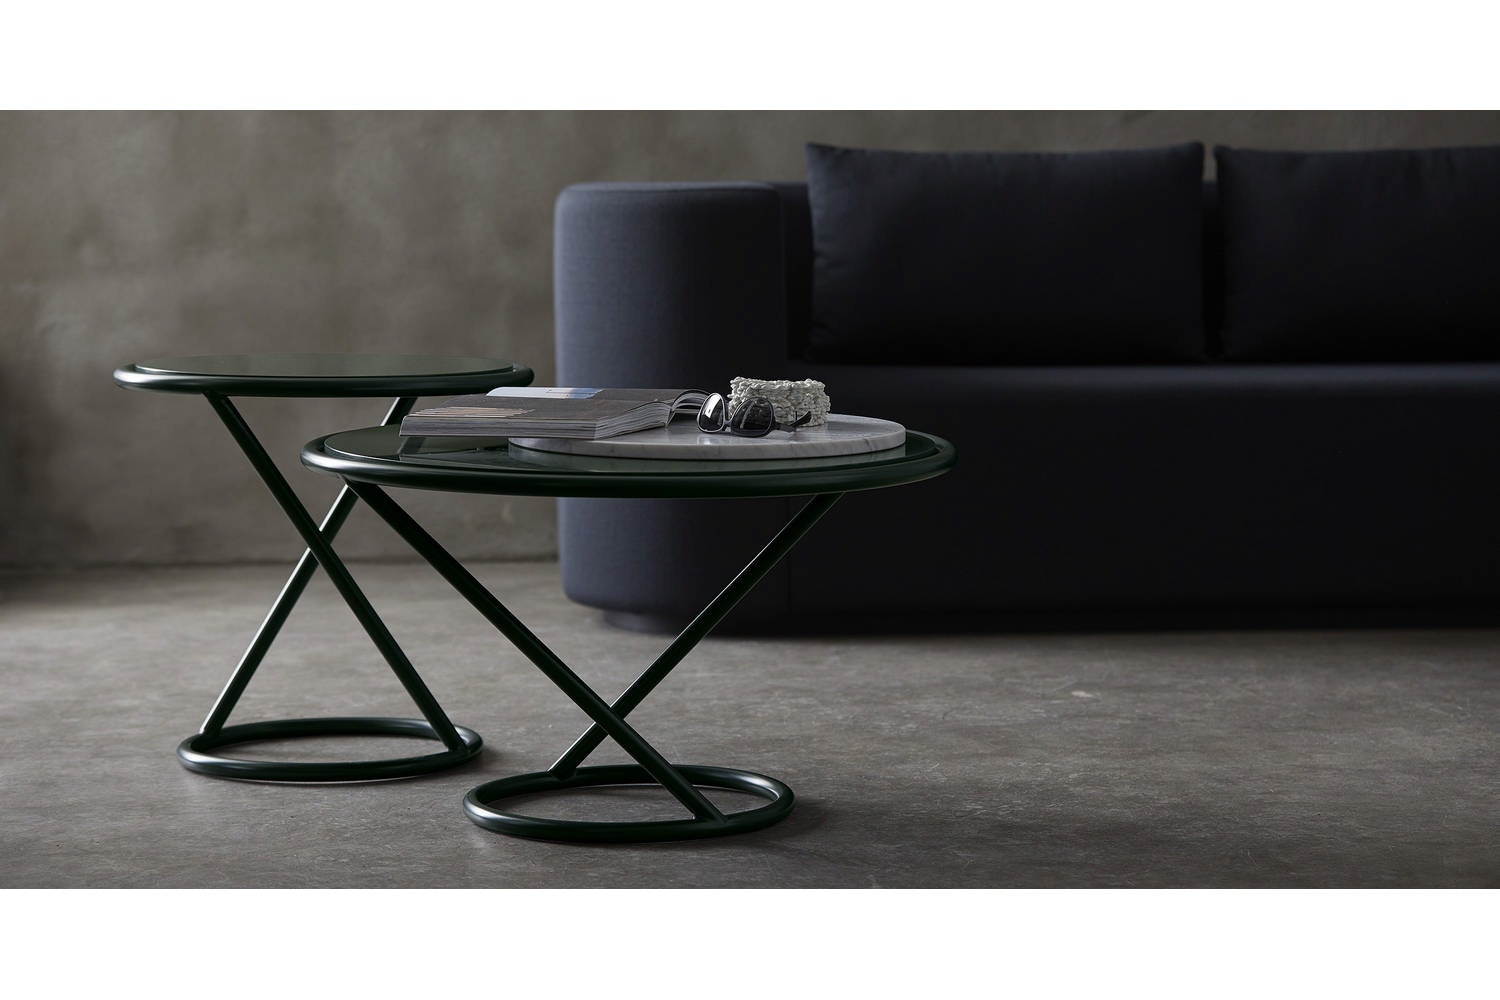 Rondo Lounge Table by Verner Panton for Verpan